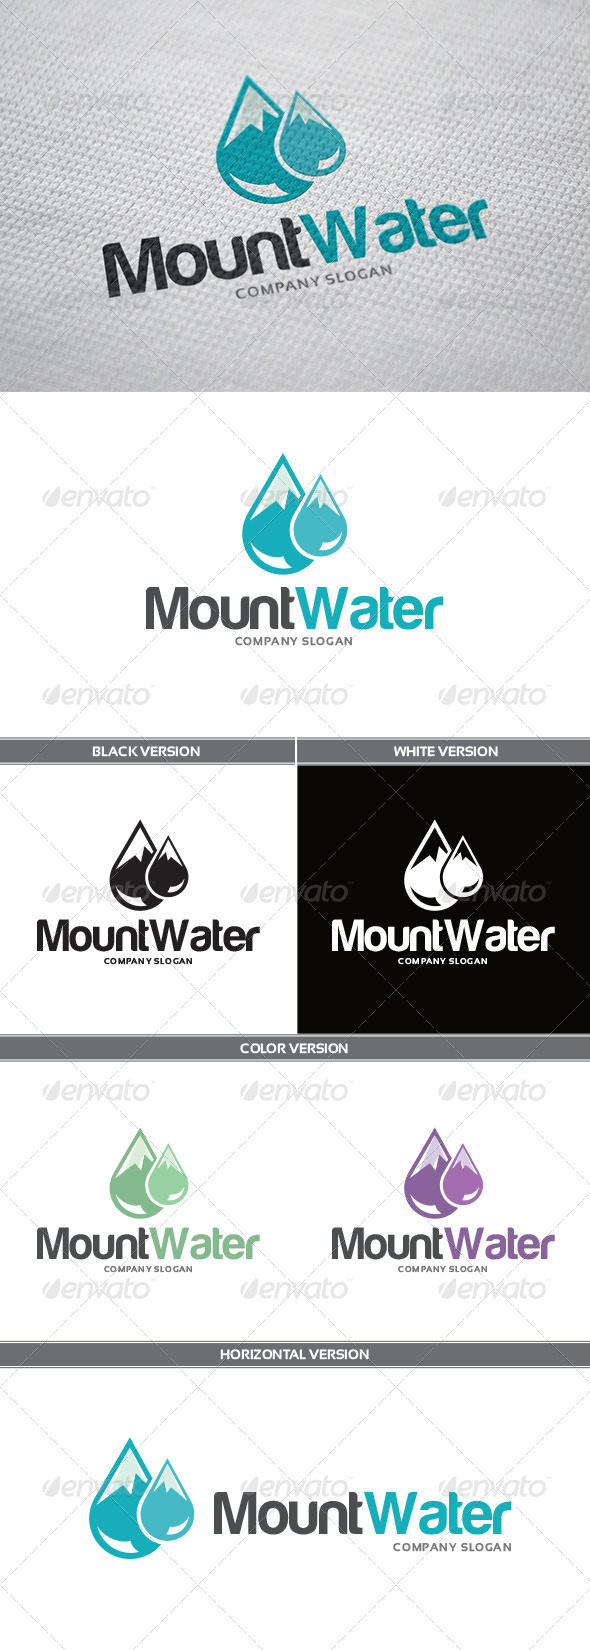 GraphicRiver MountWater Logo 6132992